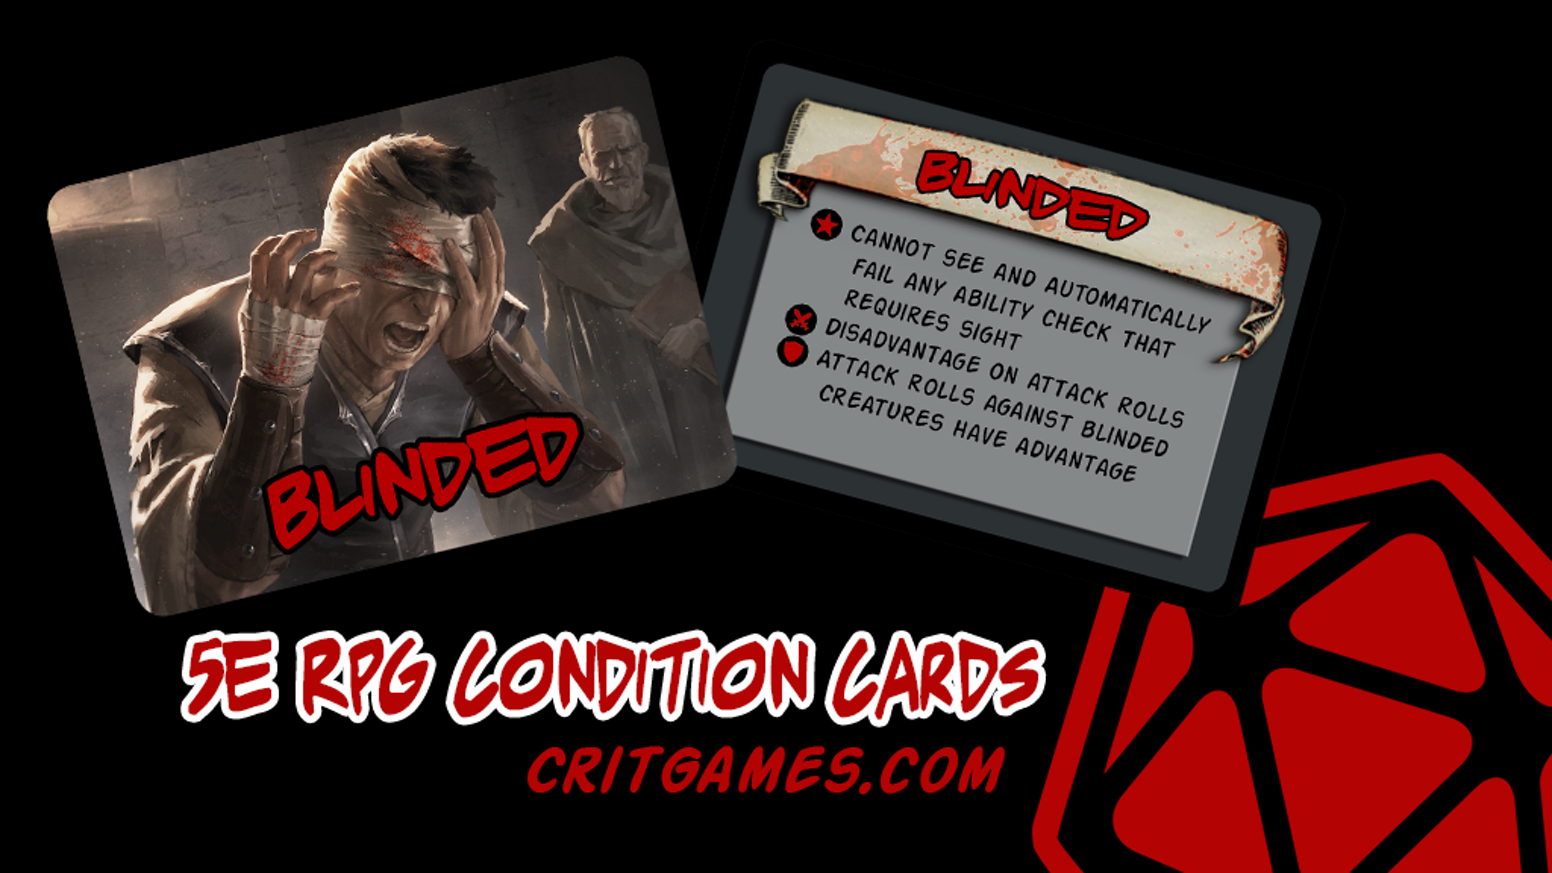 Beautifully illustrated and functional Condition Cards and Combat Cards to enhance your 5E tabletop role-playing experience.Available after Kickstarter on http://shop.critgames.com